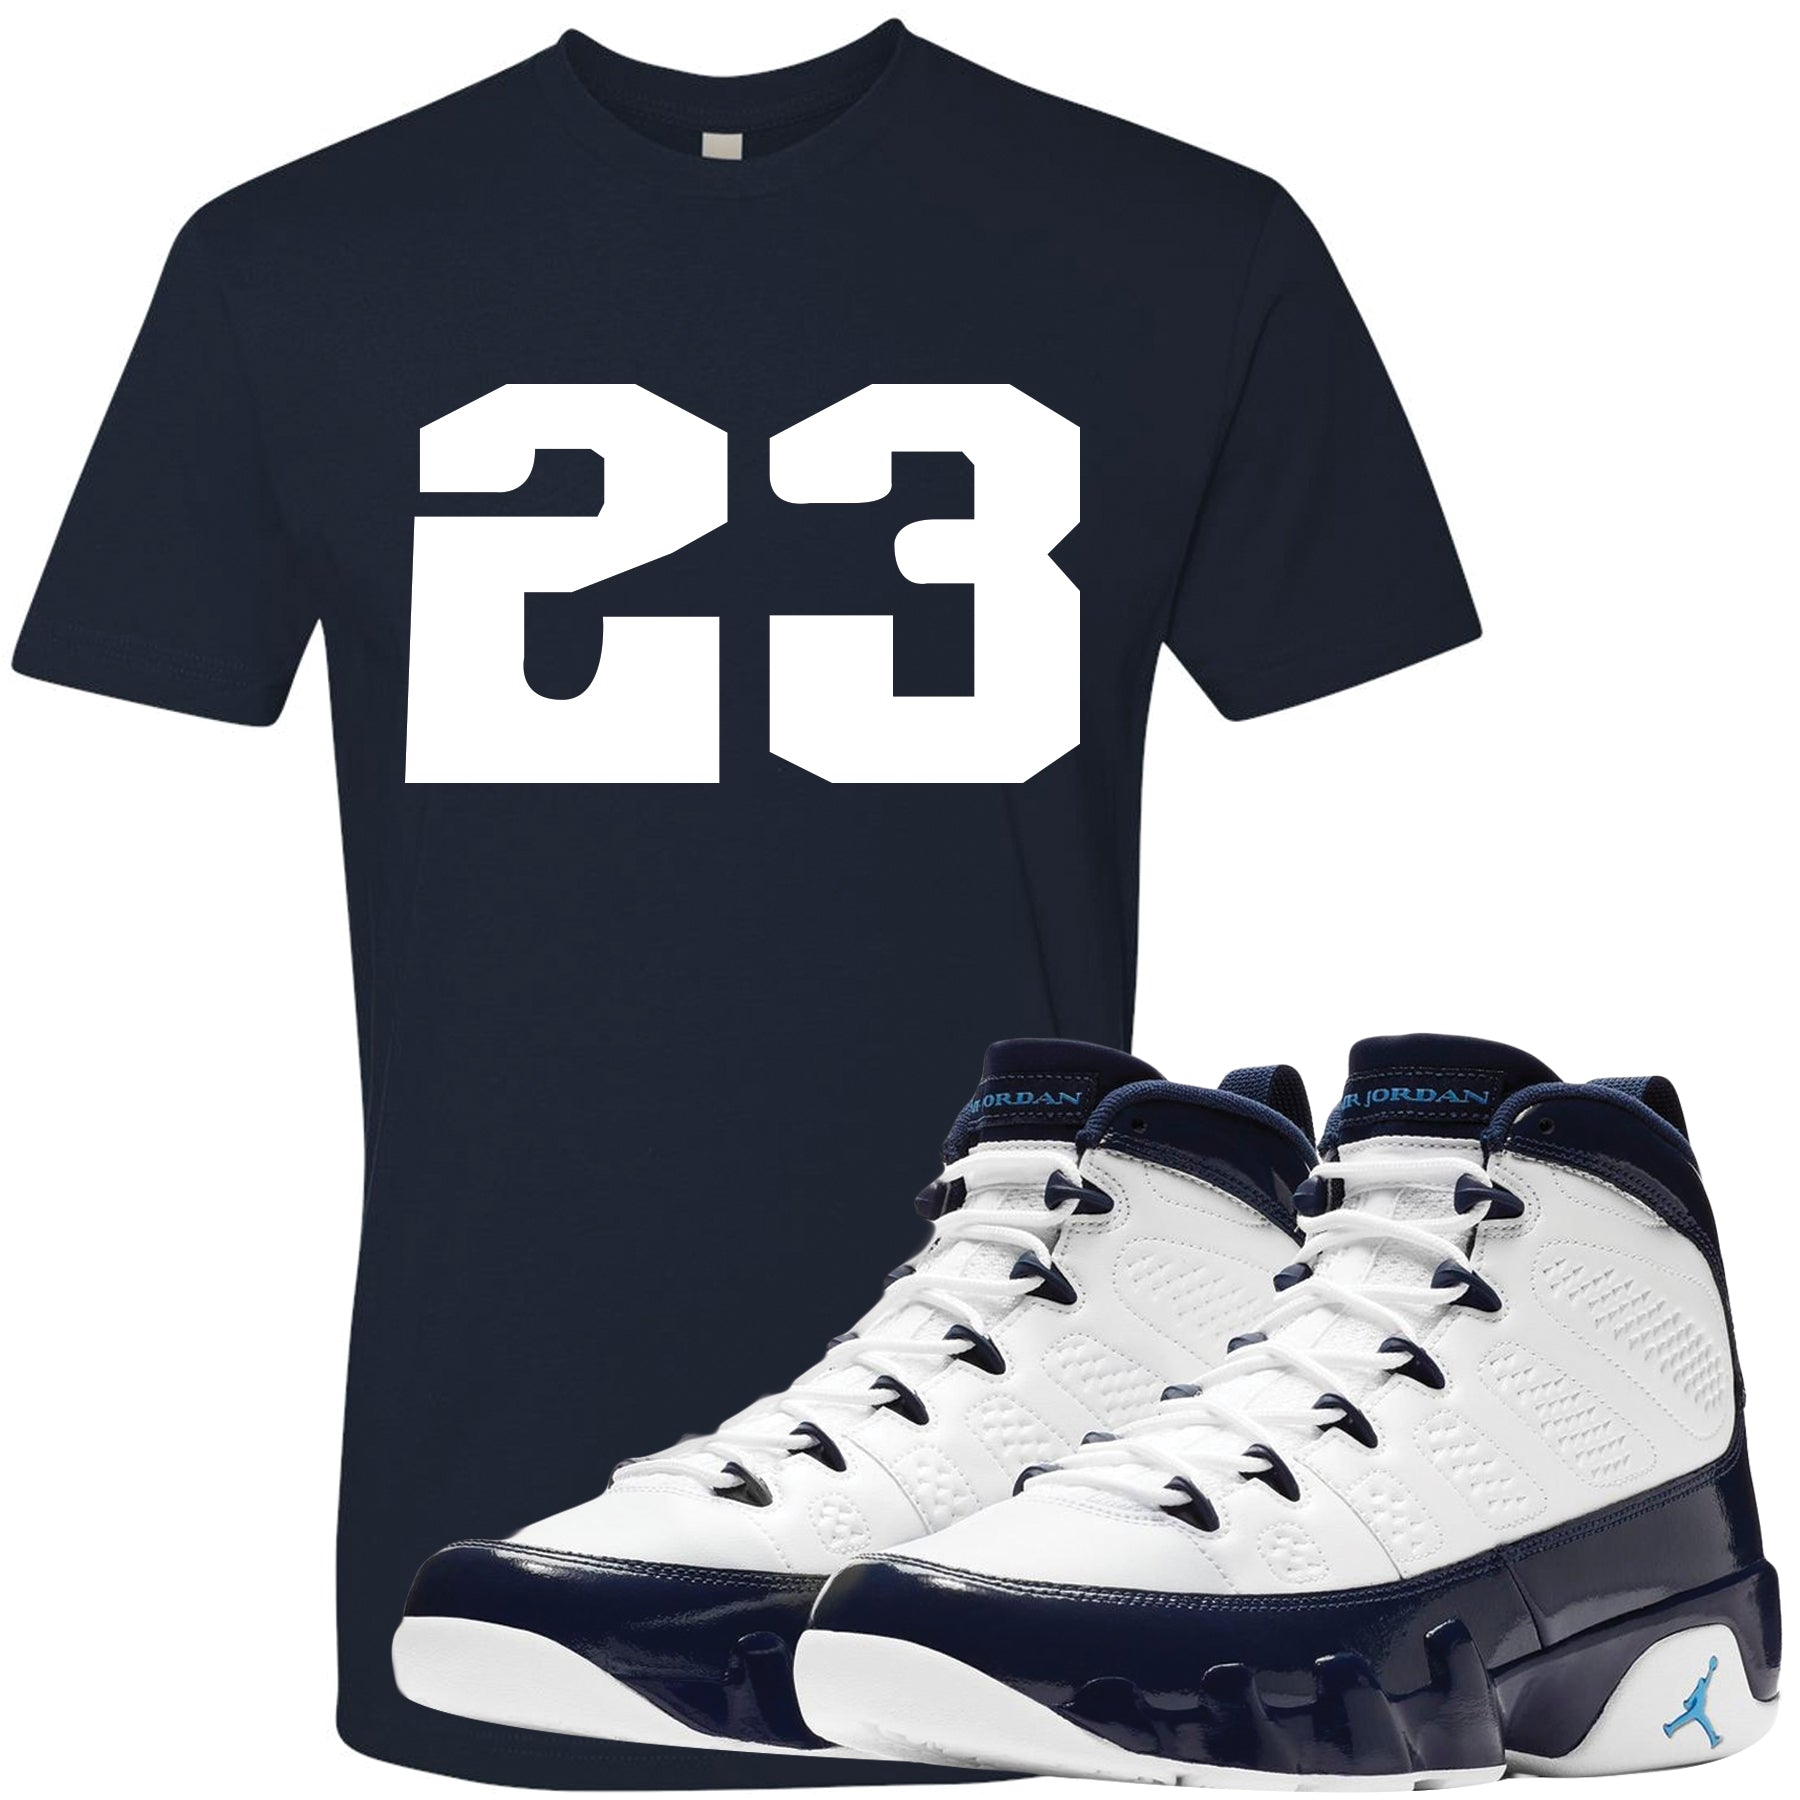 c6042b9f672f Match your pair of Jordan 9 UNC All Star Blue Pearl sneakers with this  sneaker matching